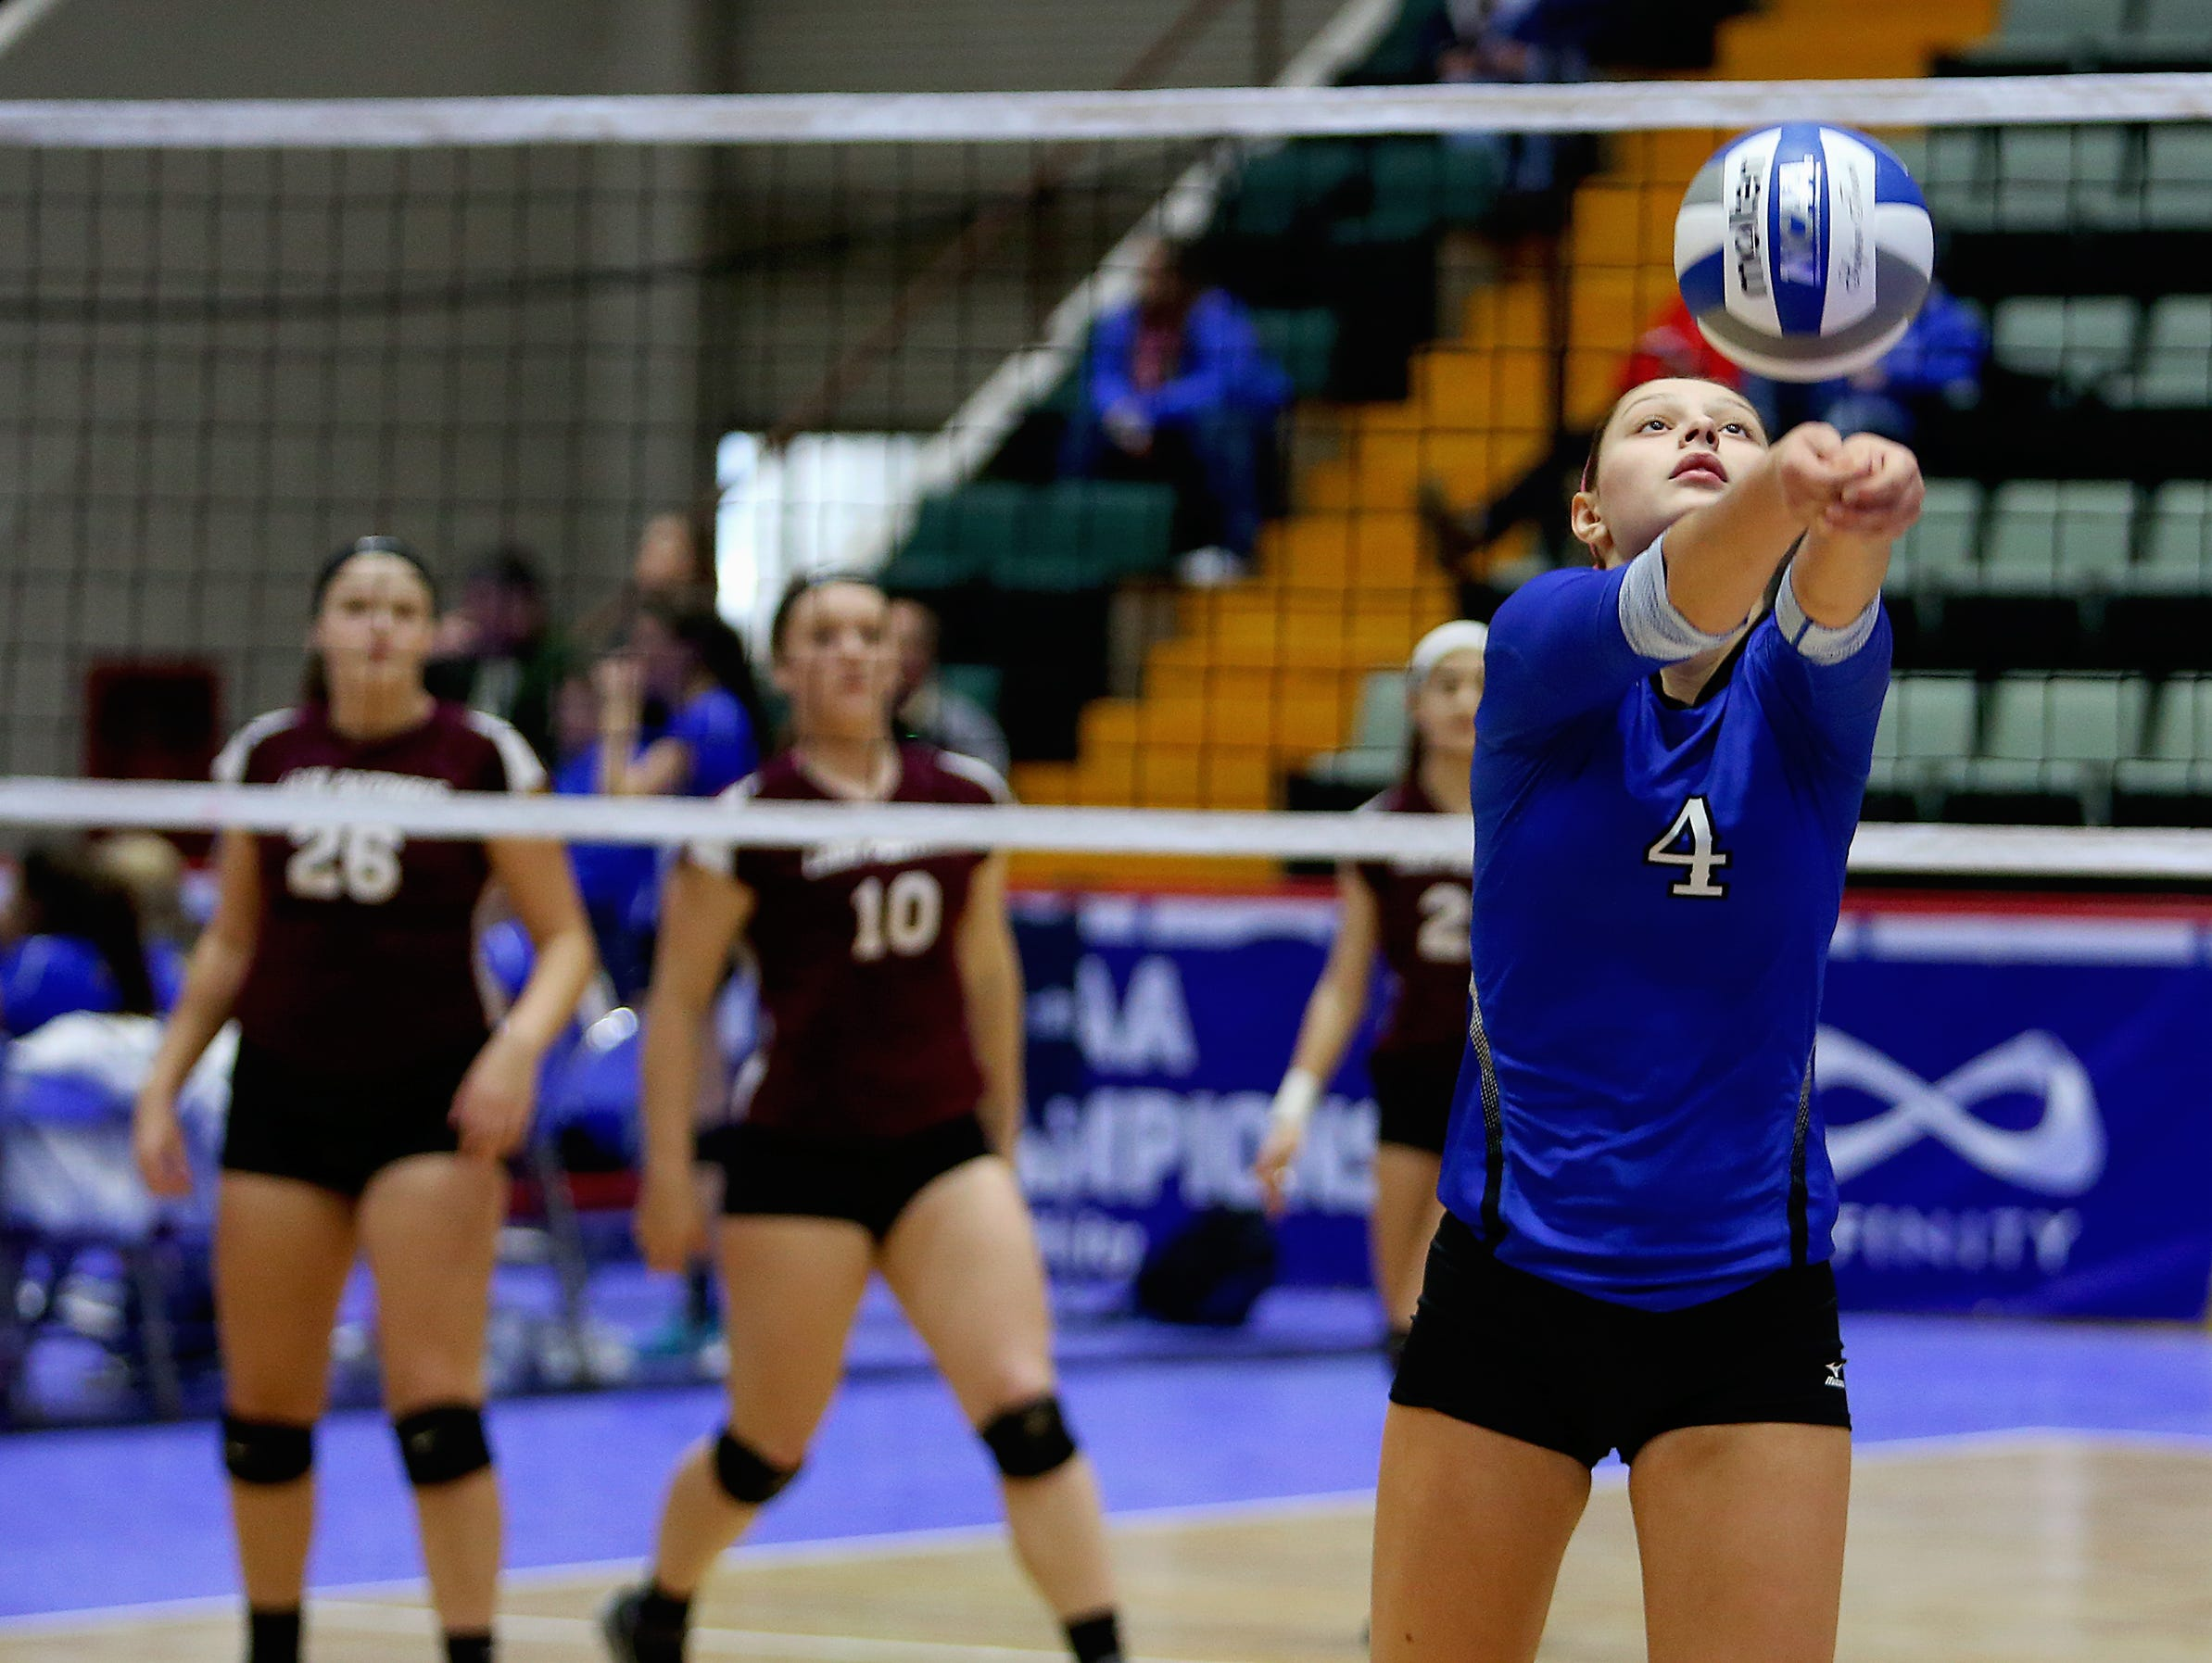 Haldane's Brooke Vahos bumps the ball during Haldane's two-game loss to Portville at the state volleyball championships on Saturday, Nov. 21, 2015, at the Glens Falls Civic Center.